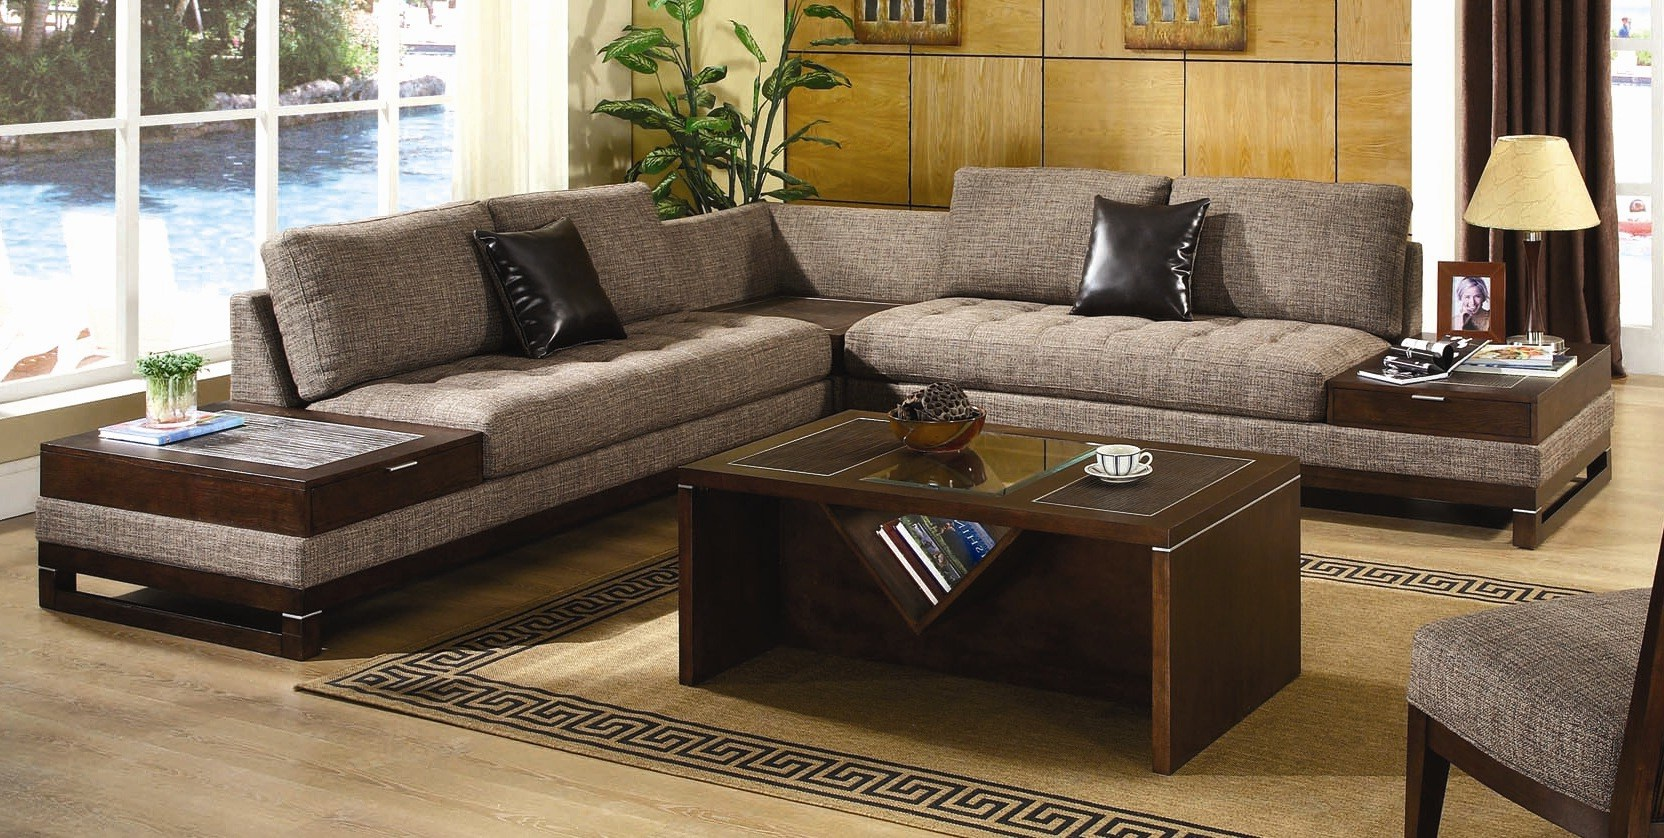 3 piece coffee table sets under 200 for Living room table sets